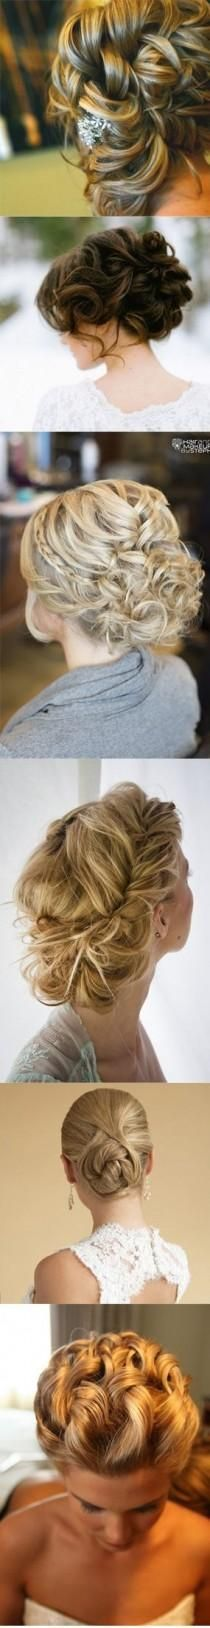 Weddings - Hair Affair